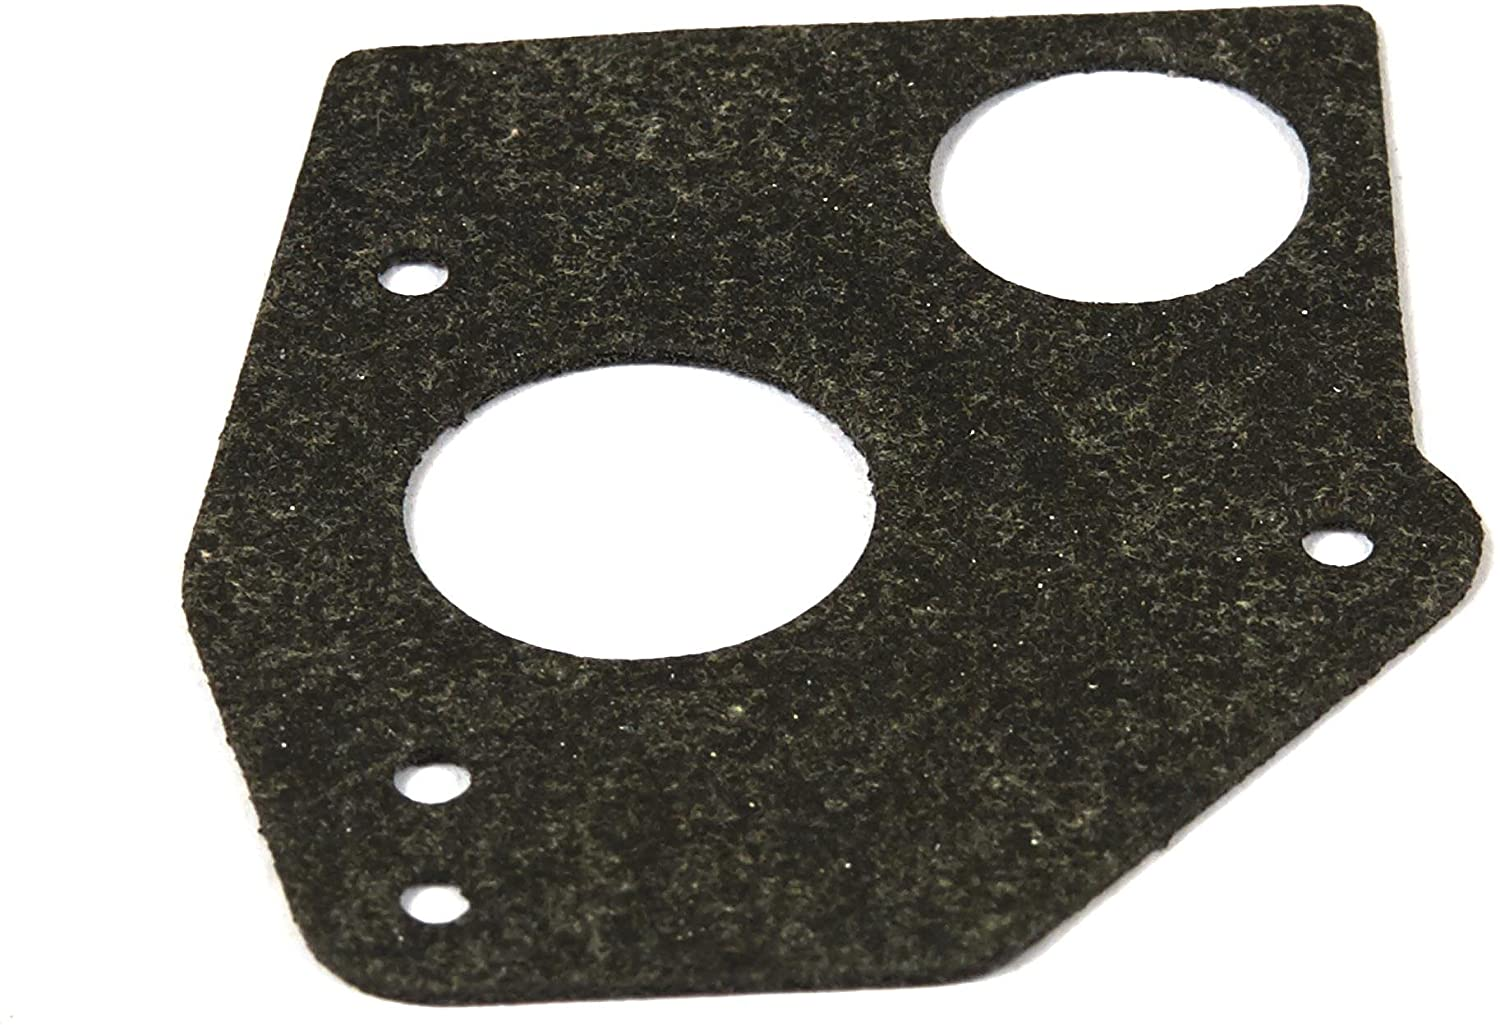 Briggs & Stratton 272409S Fuel Tank Gasket Replaces 272409/271592/27911/272409S/555084